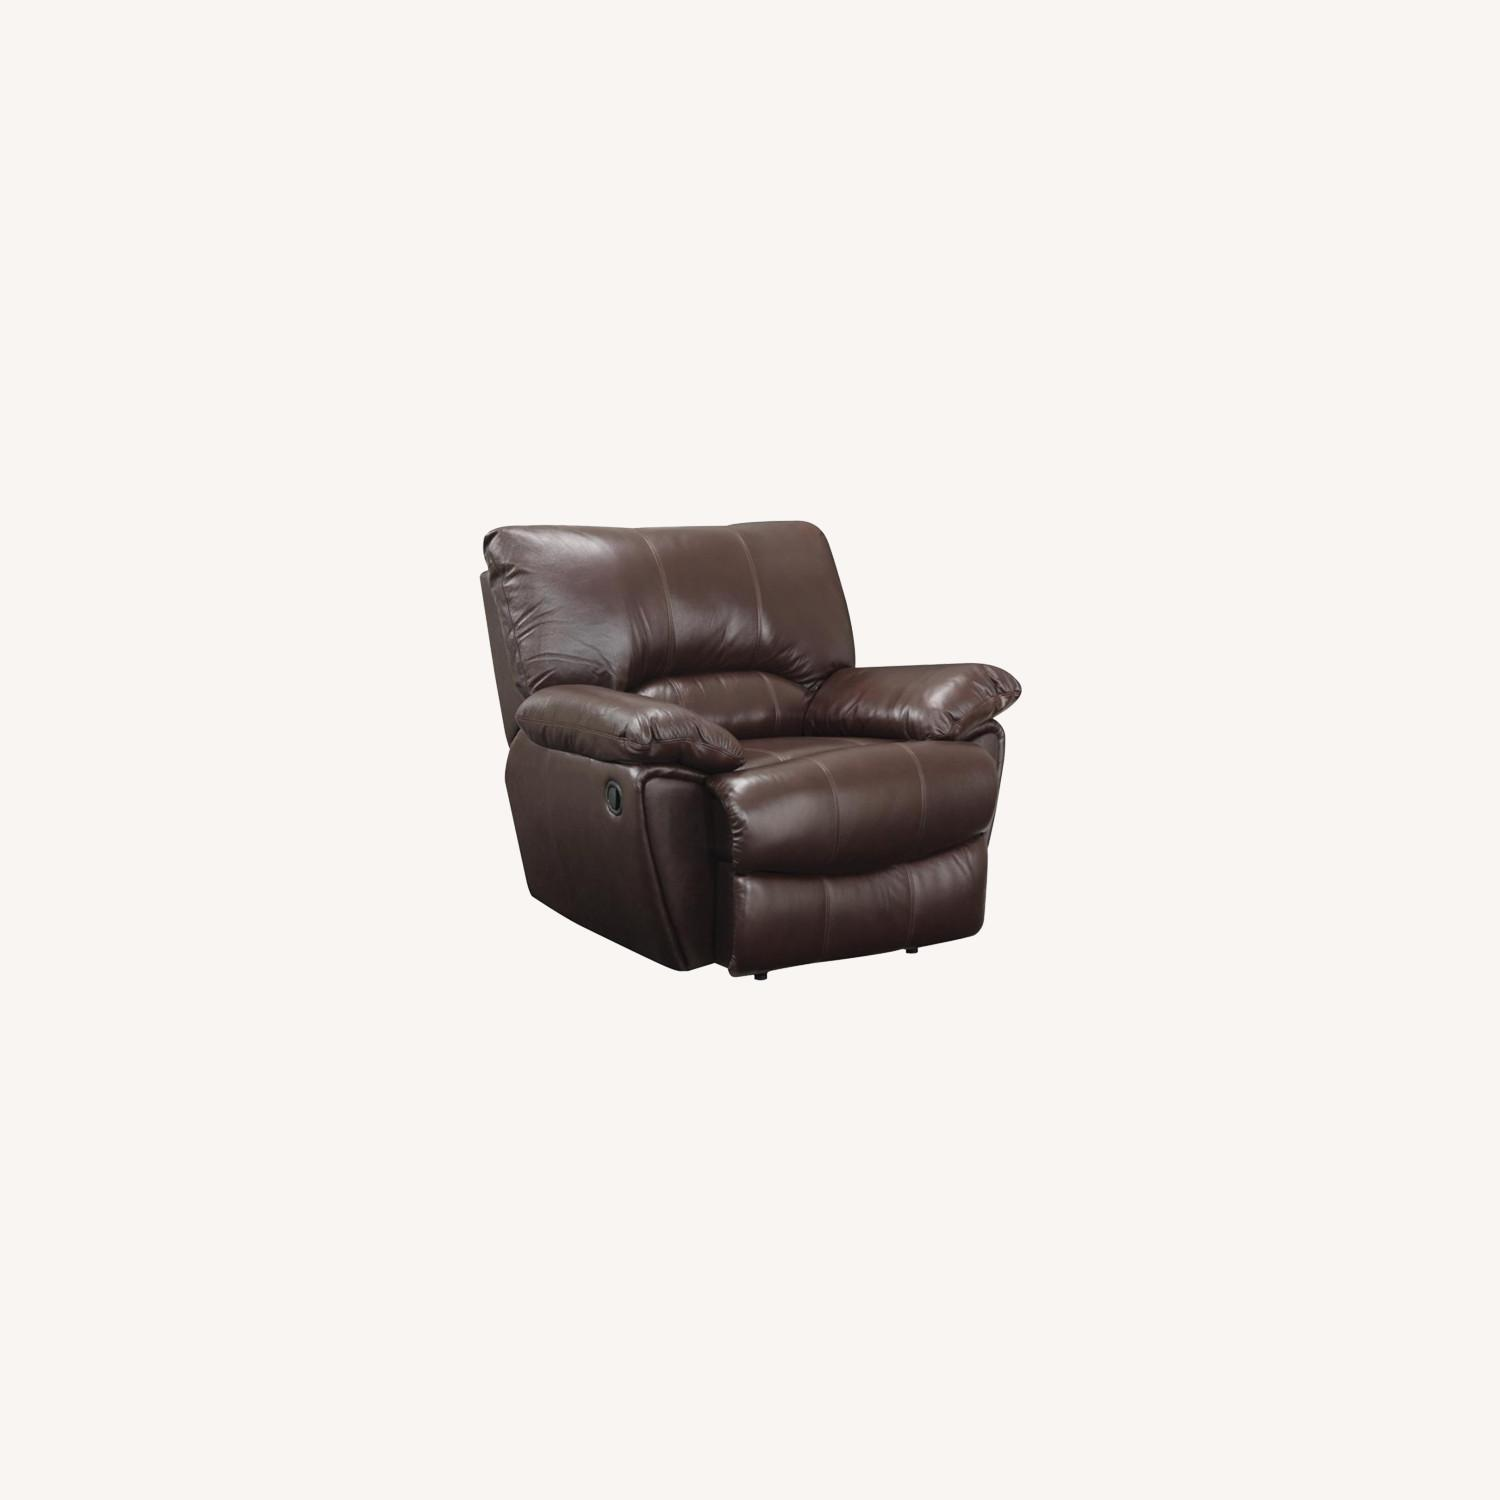 Recliner Chair In Chocolate Top Grain Leather - image-6